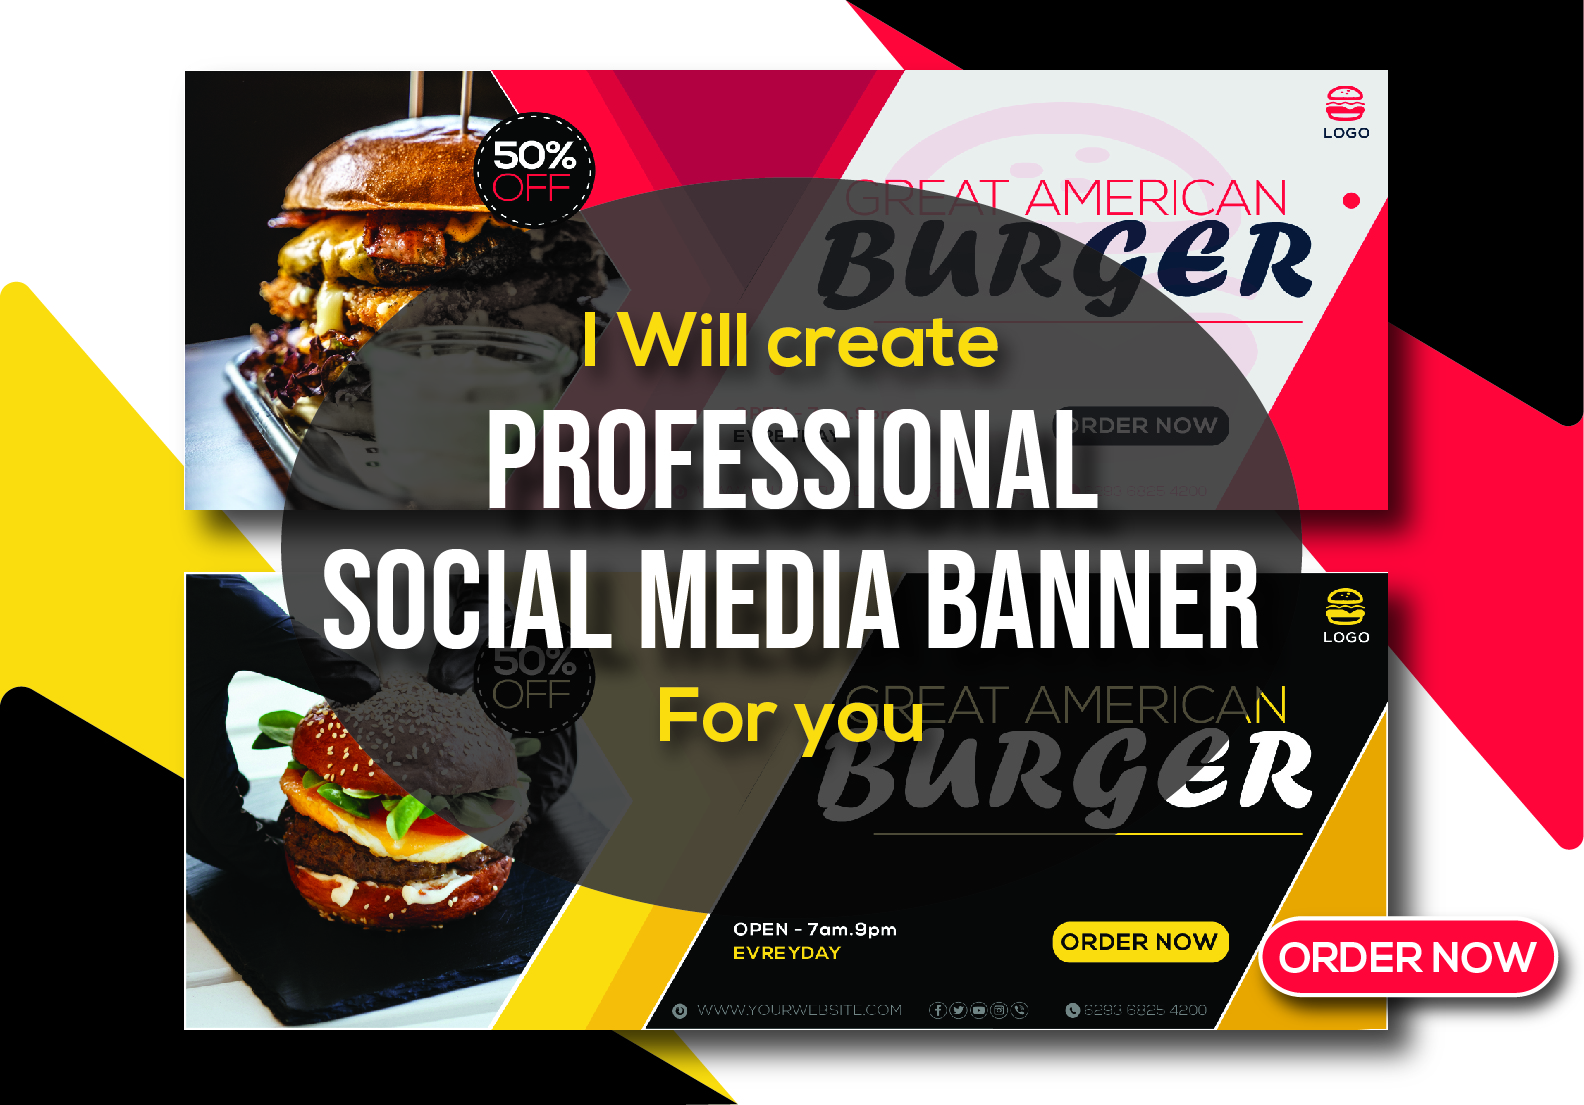 I will create professional social media banner for Facebook